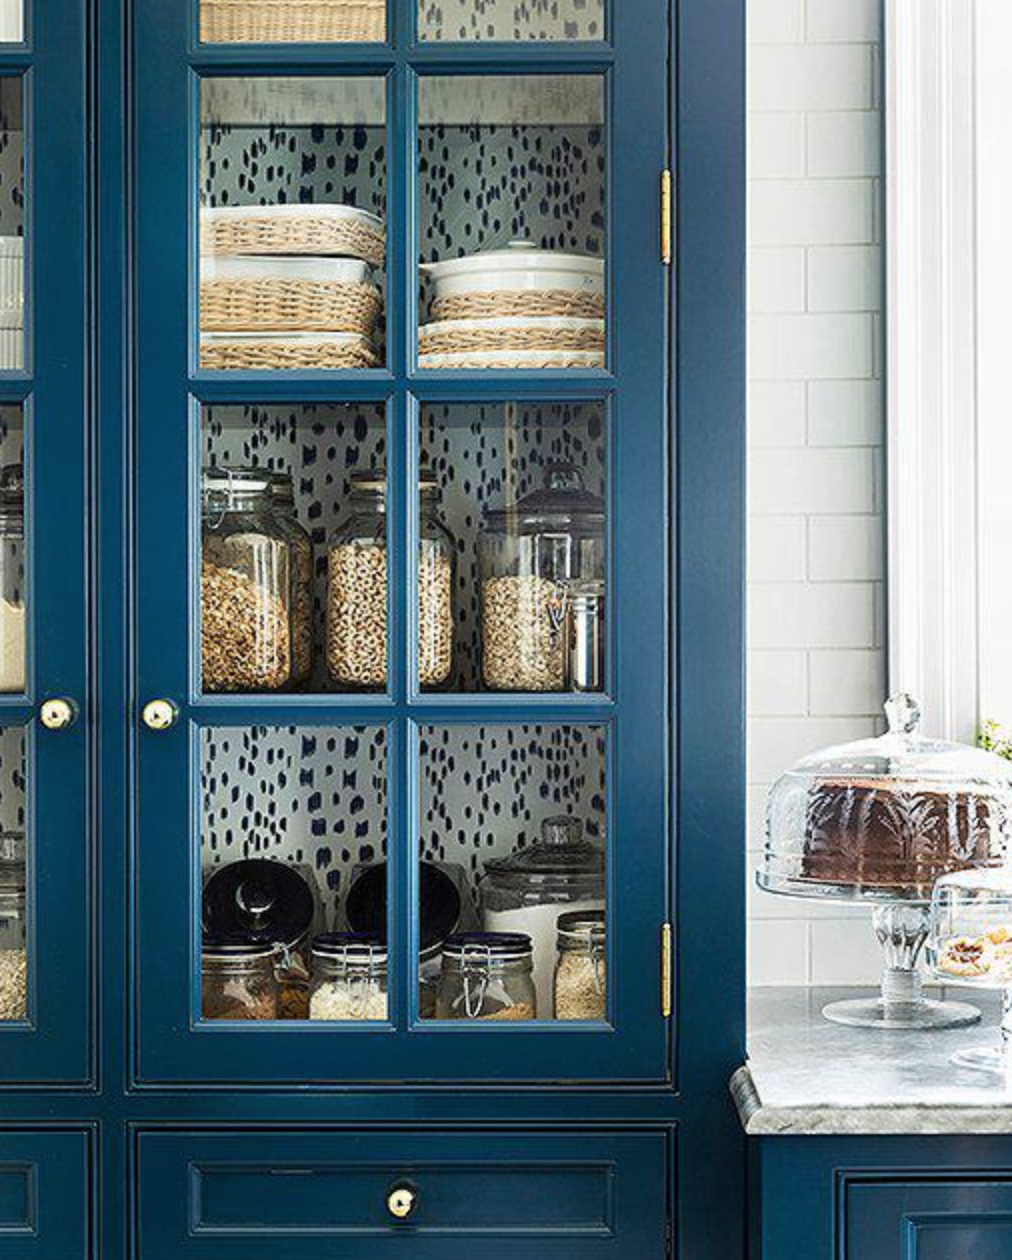 fabric lined pantry | Glass kitchen cabinets, Kitchen ...